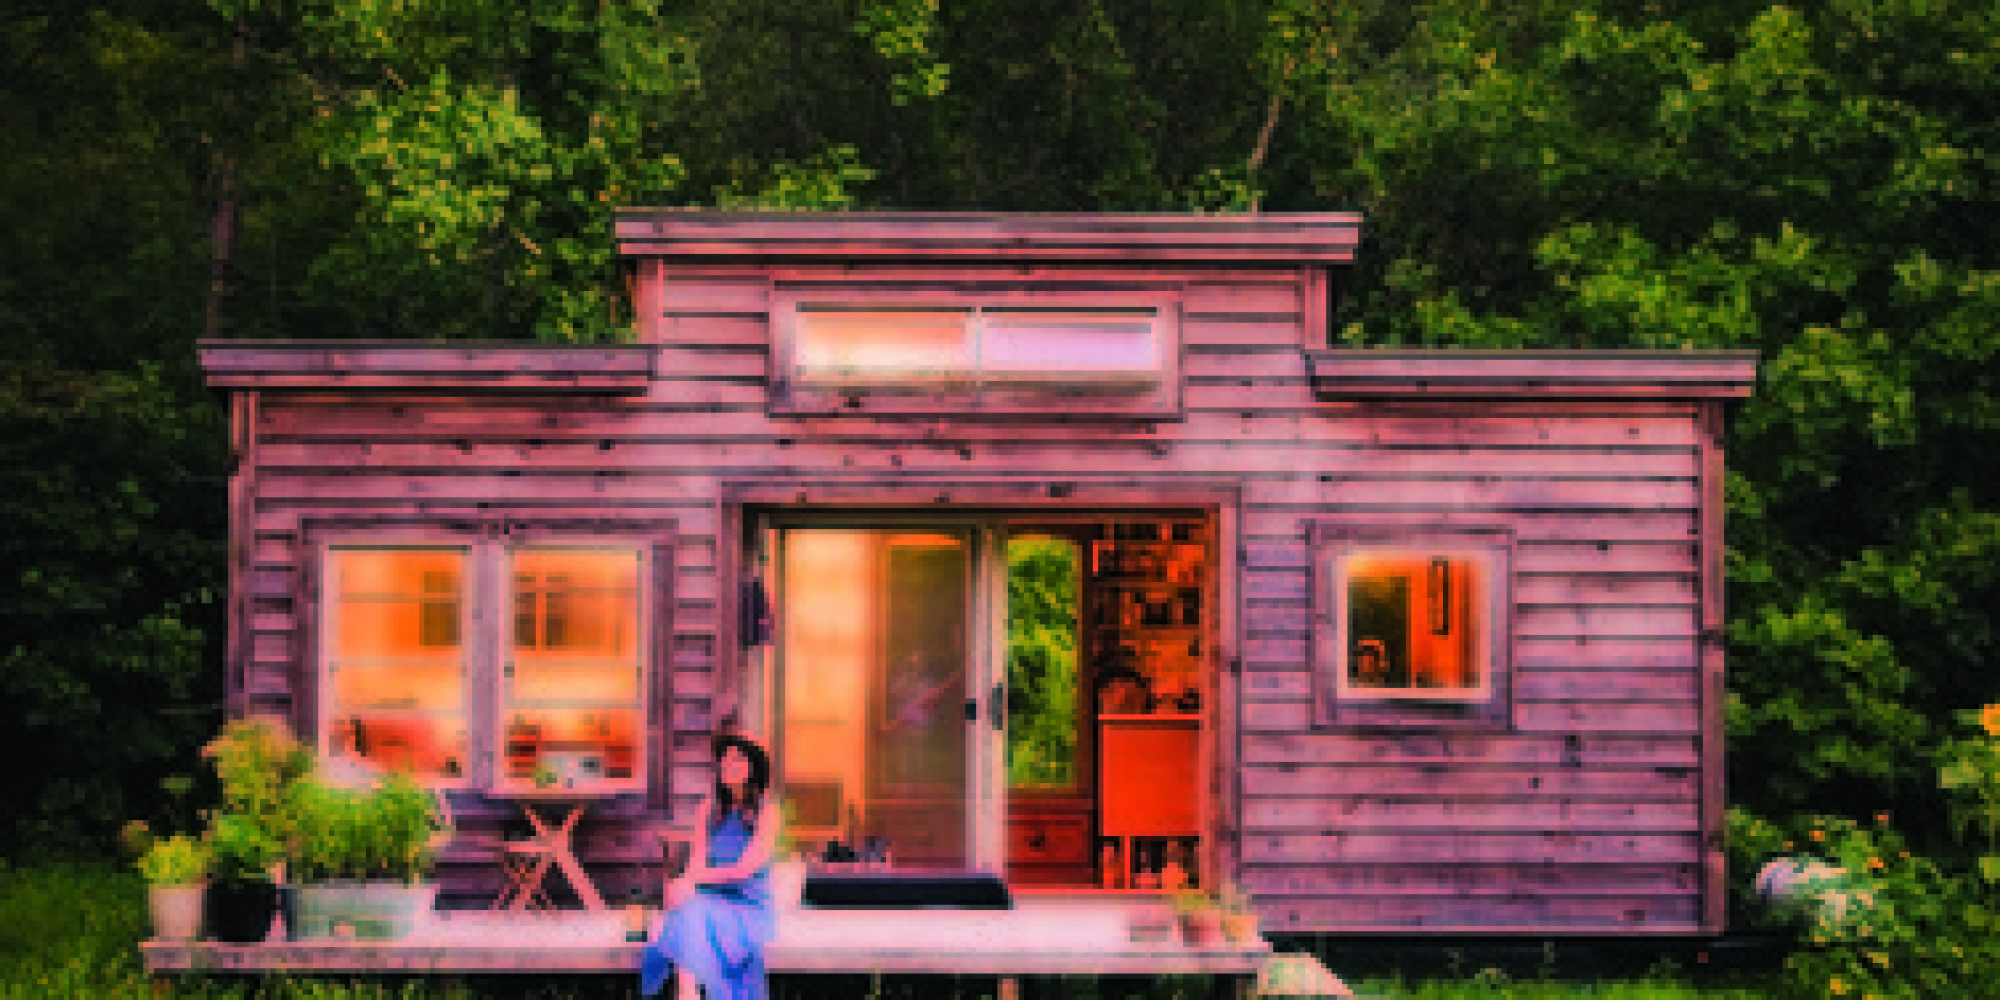 Houses Made From Recycled Materials : Tiny houses made from recycled materials huffpost